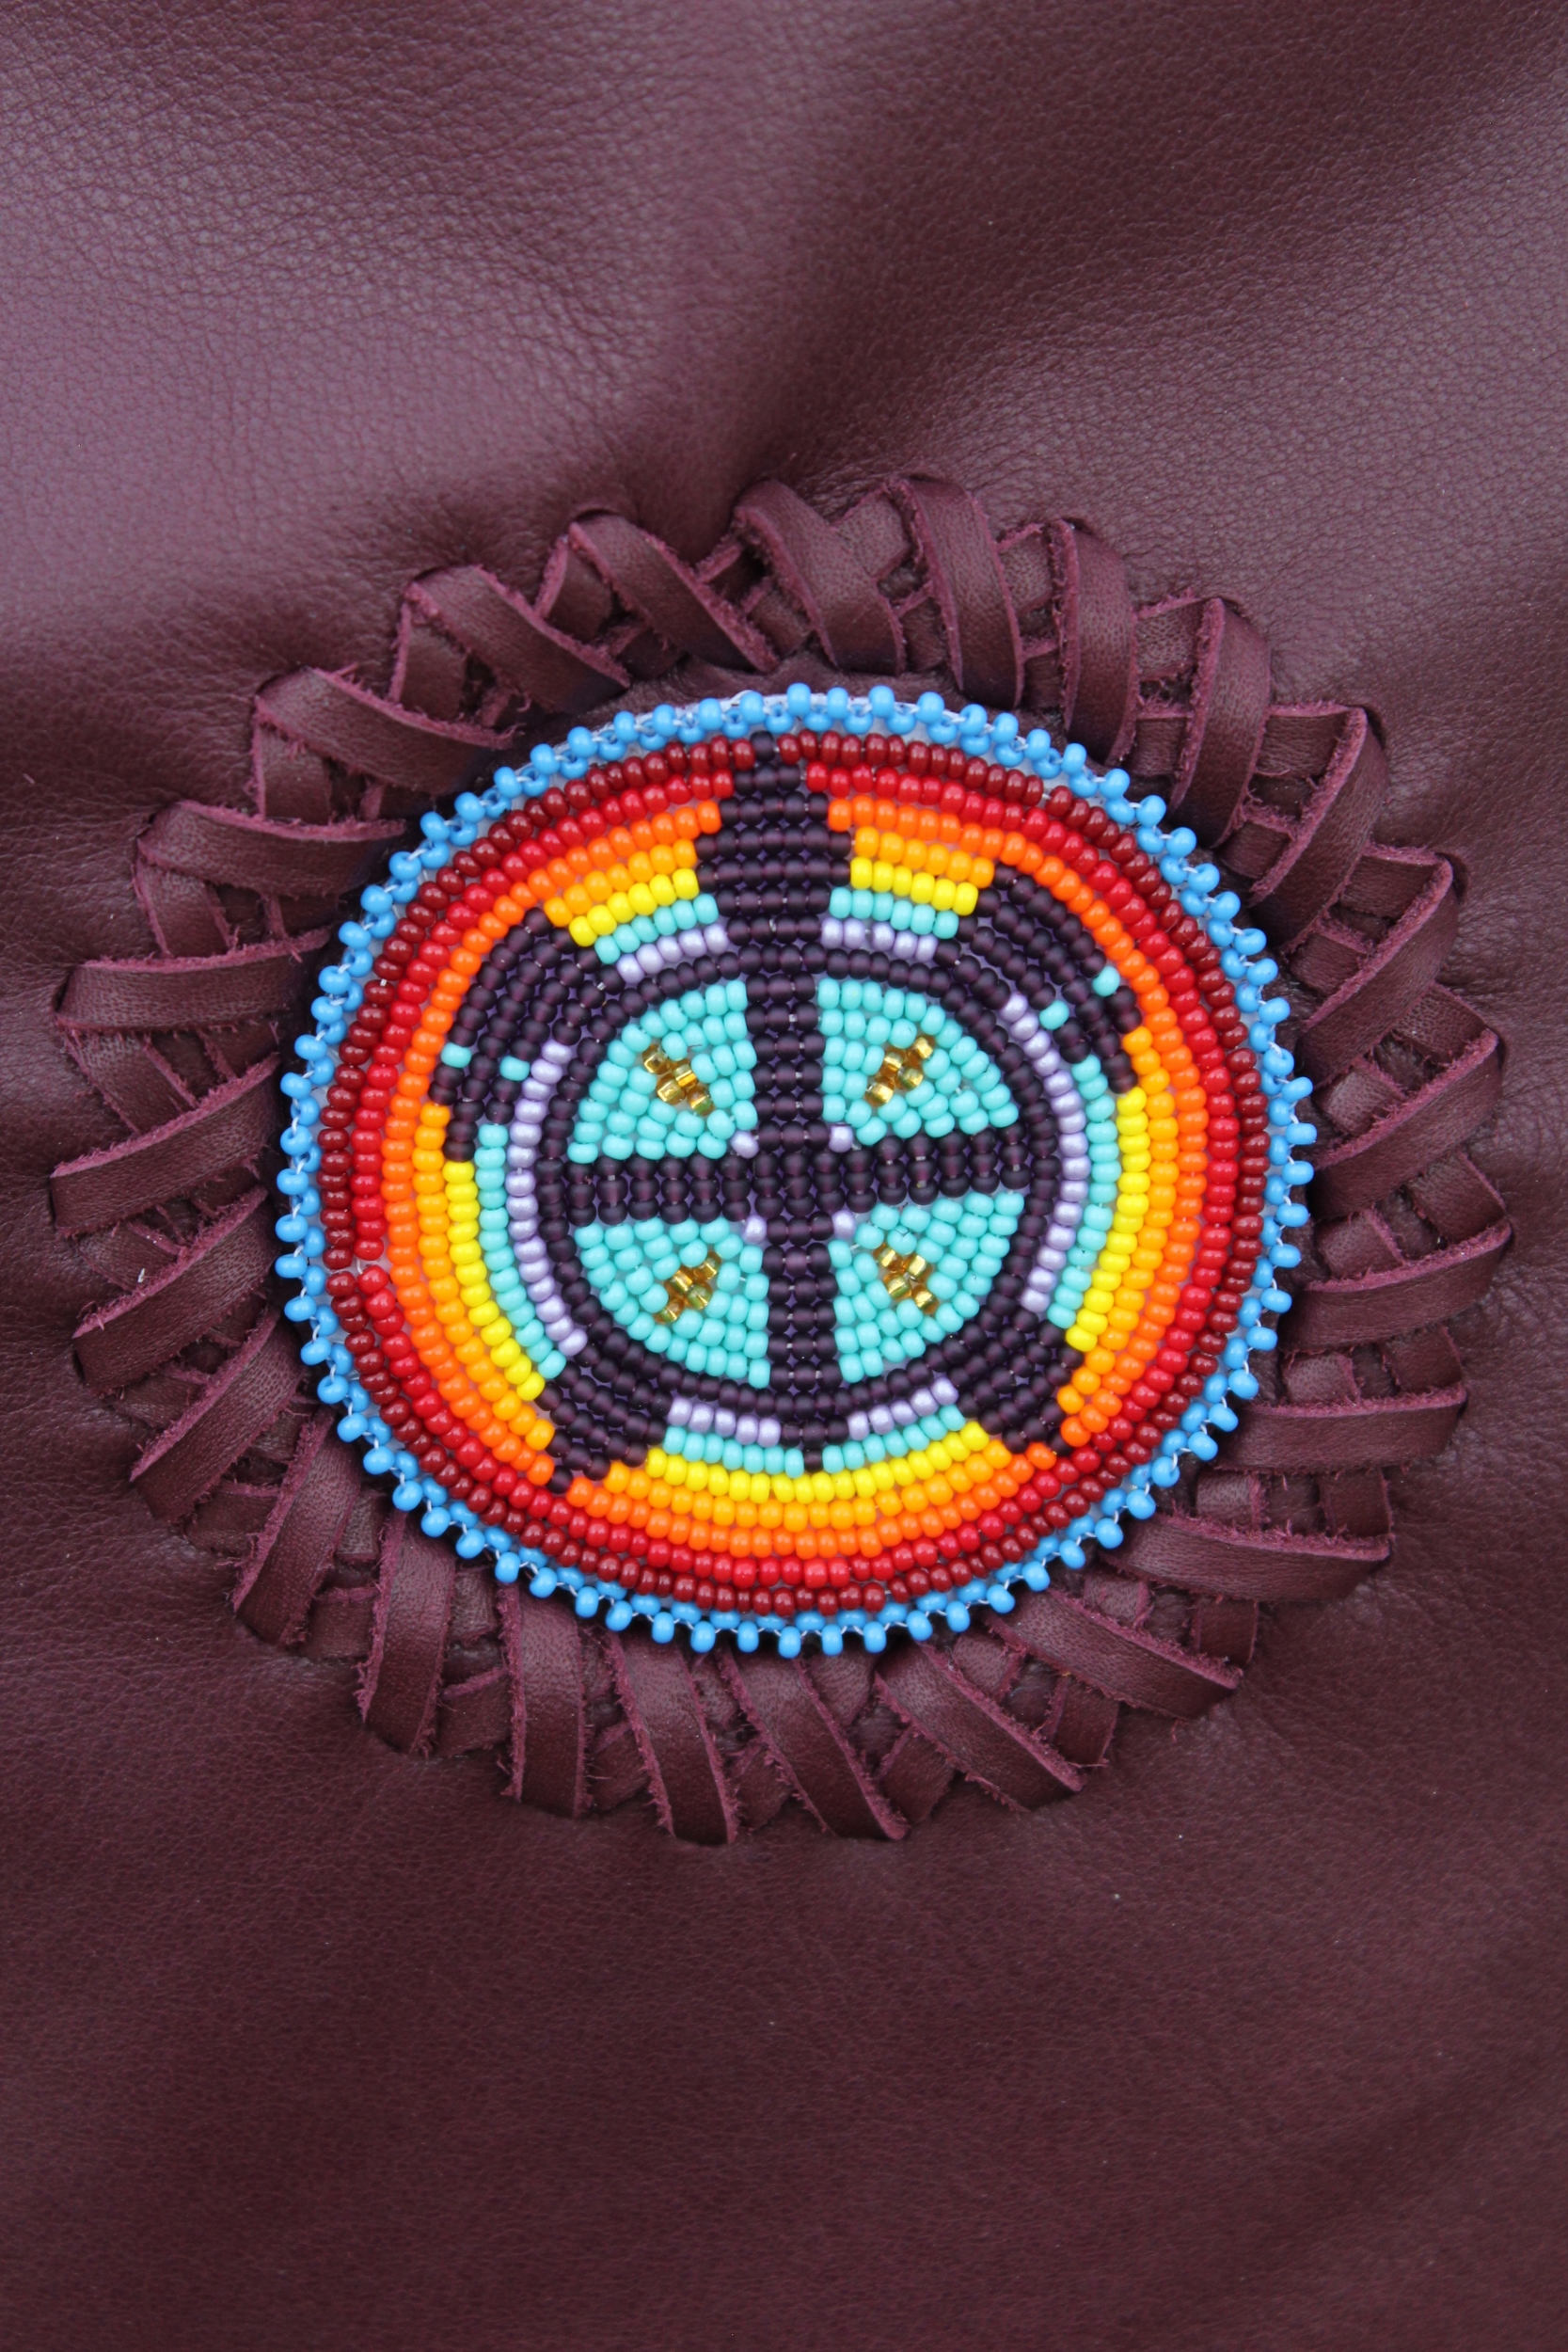 A beaded turtle done in rainbow colors.